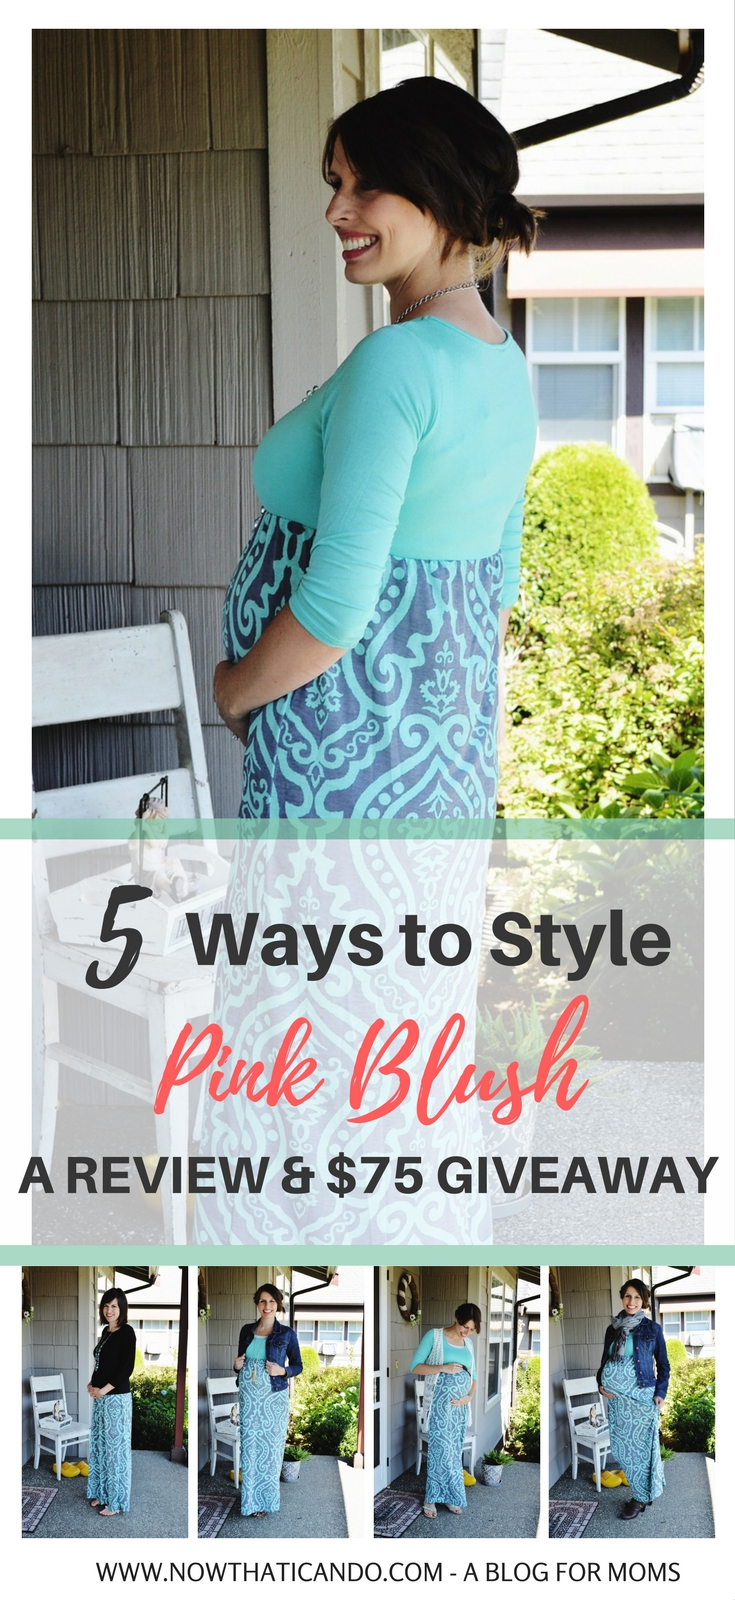 5 ways to style one maternity maxi dress and shows how it looks prior to pregnancy and during the second and third trimesters. // Ways to wear spring & summer maxi dress // Mom fashion // How to style maxi dress // Feminine maternity #outfitideas #fashion #maternity #pregnancy